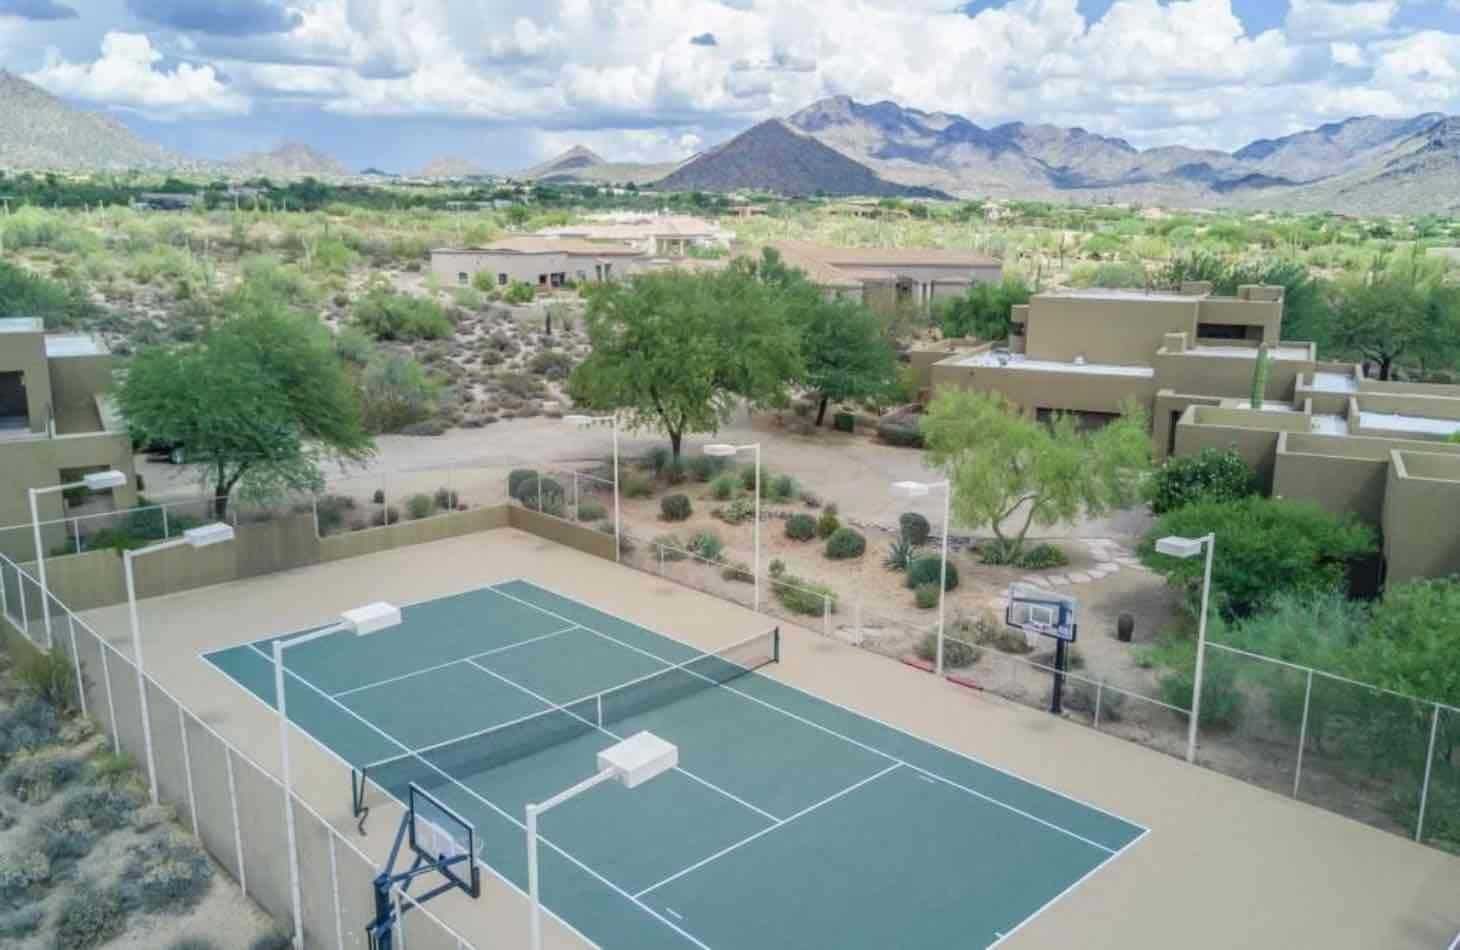 Sport court available to all clients receiving addiction treatment at the hope house vereda solana mansion